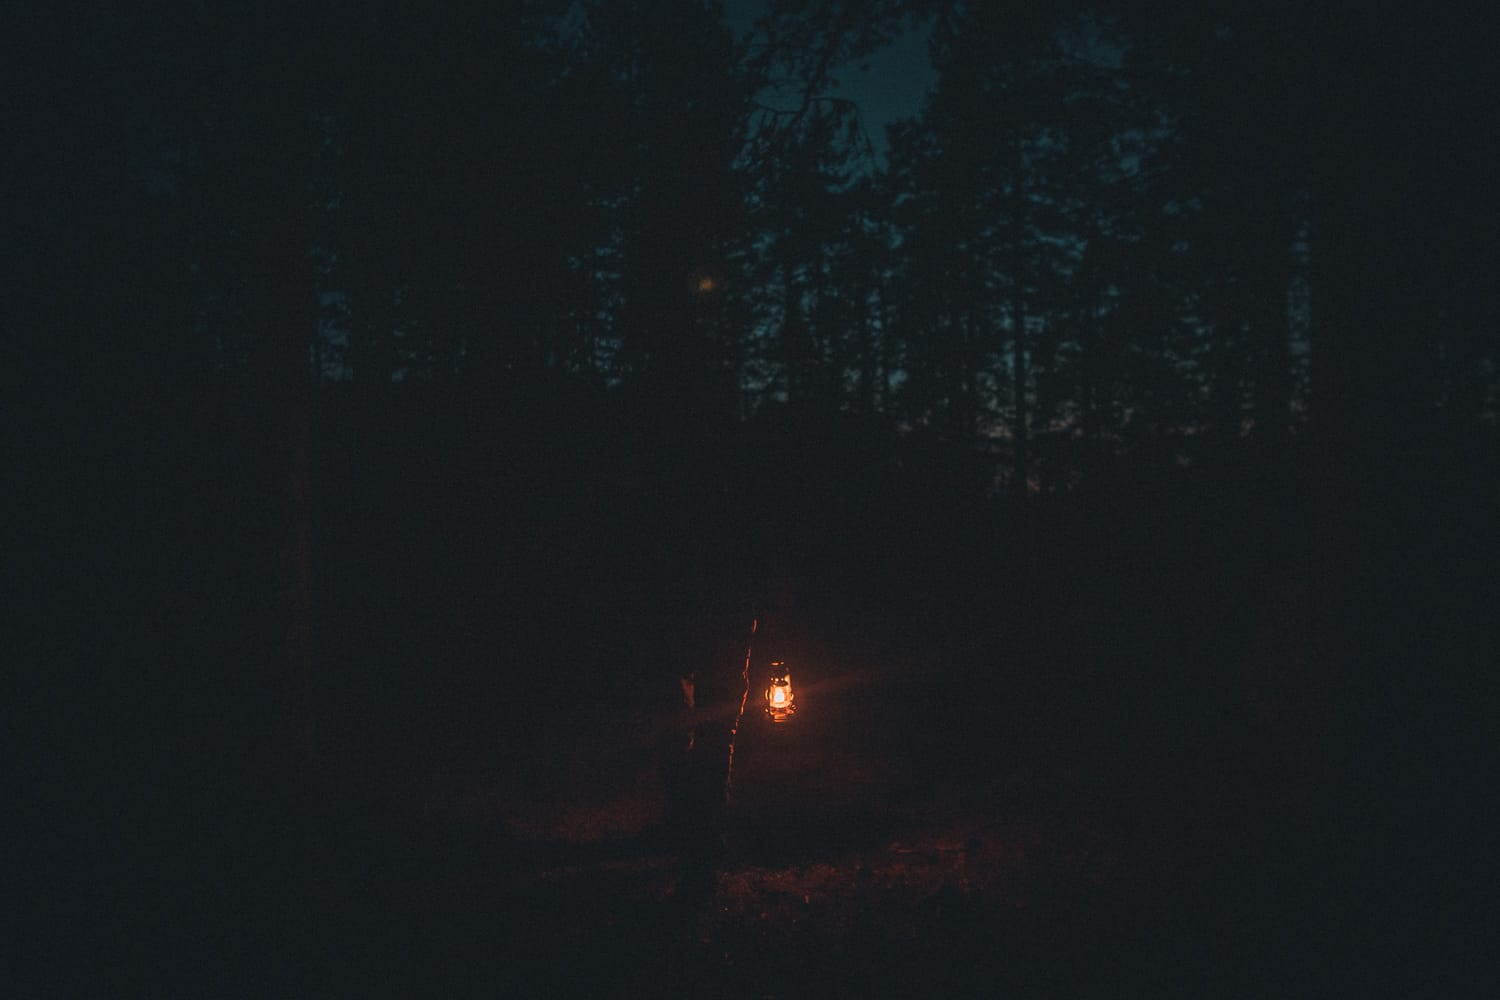 man walking into the forest holding a kerosine lamp